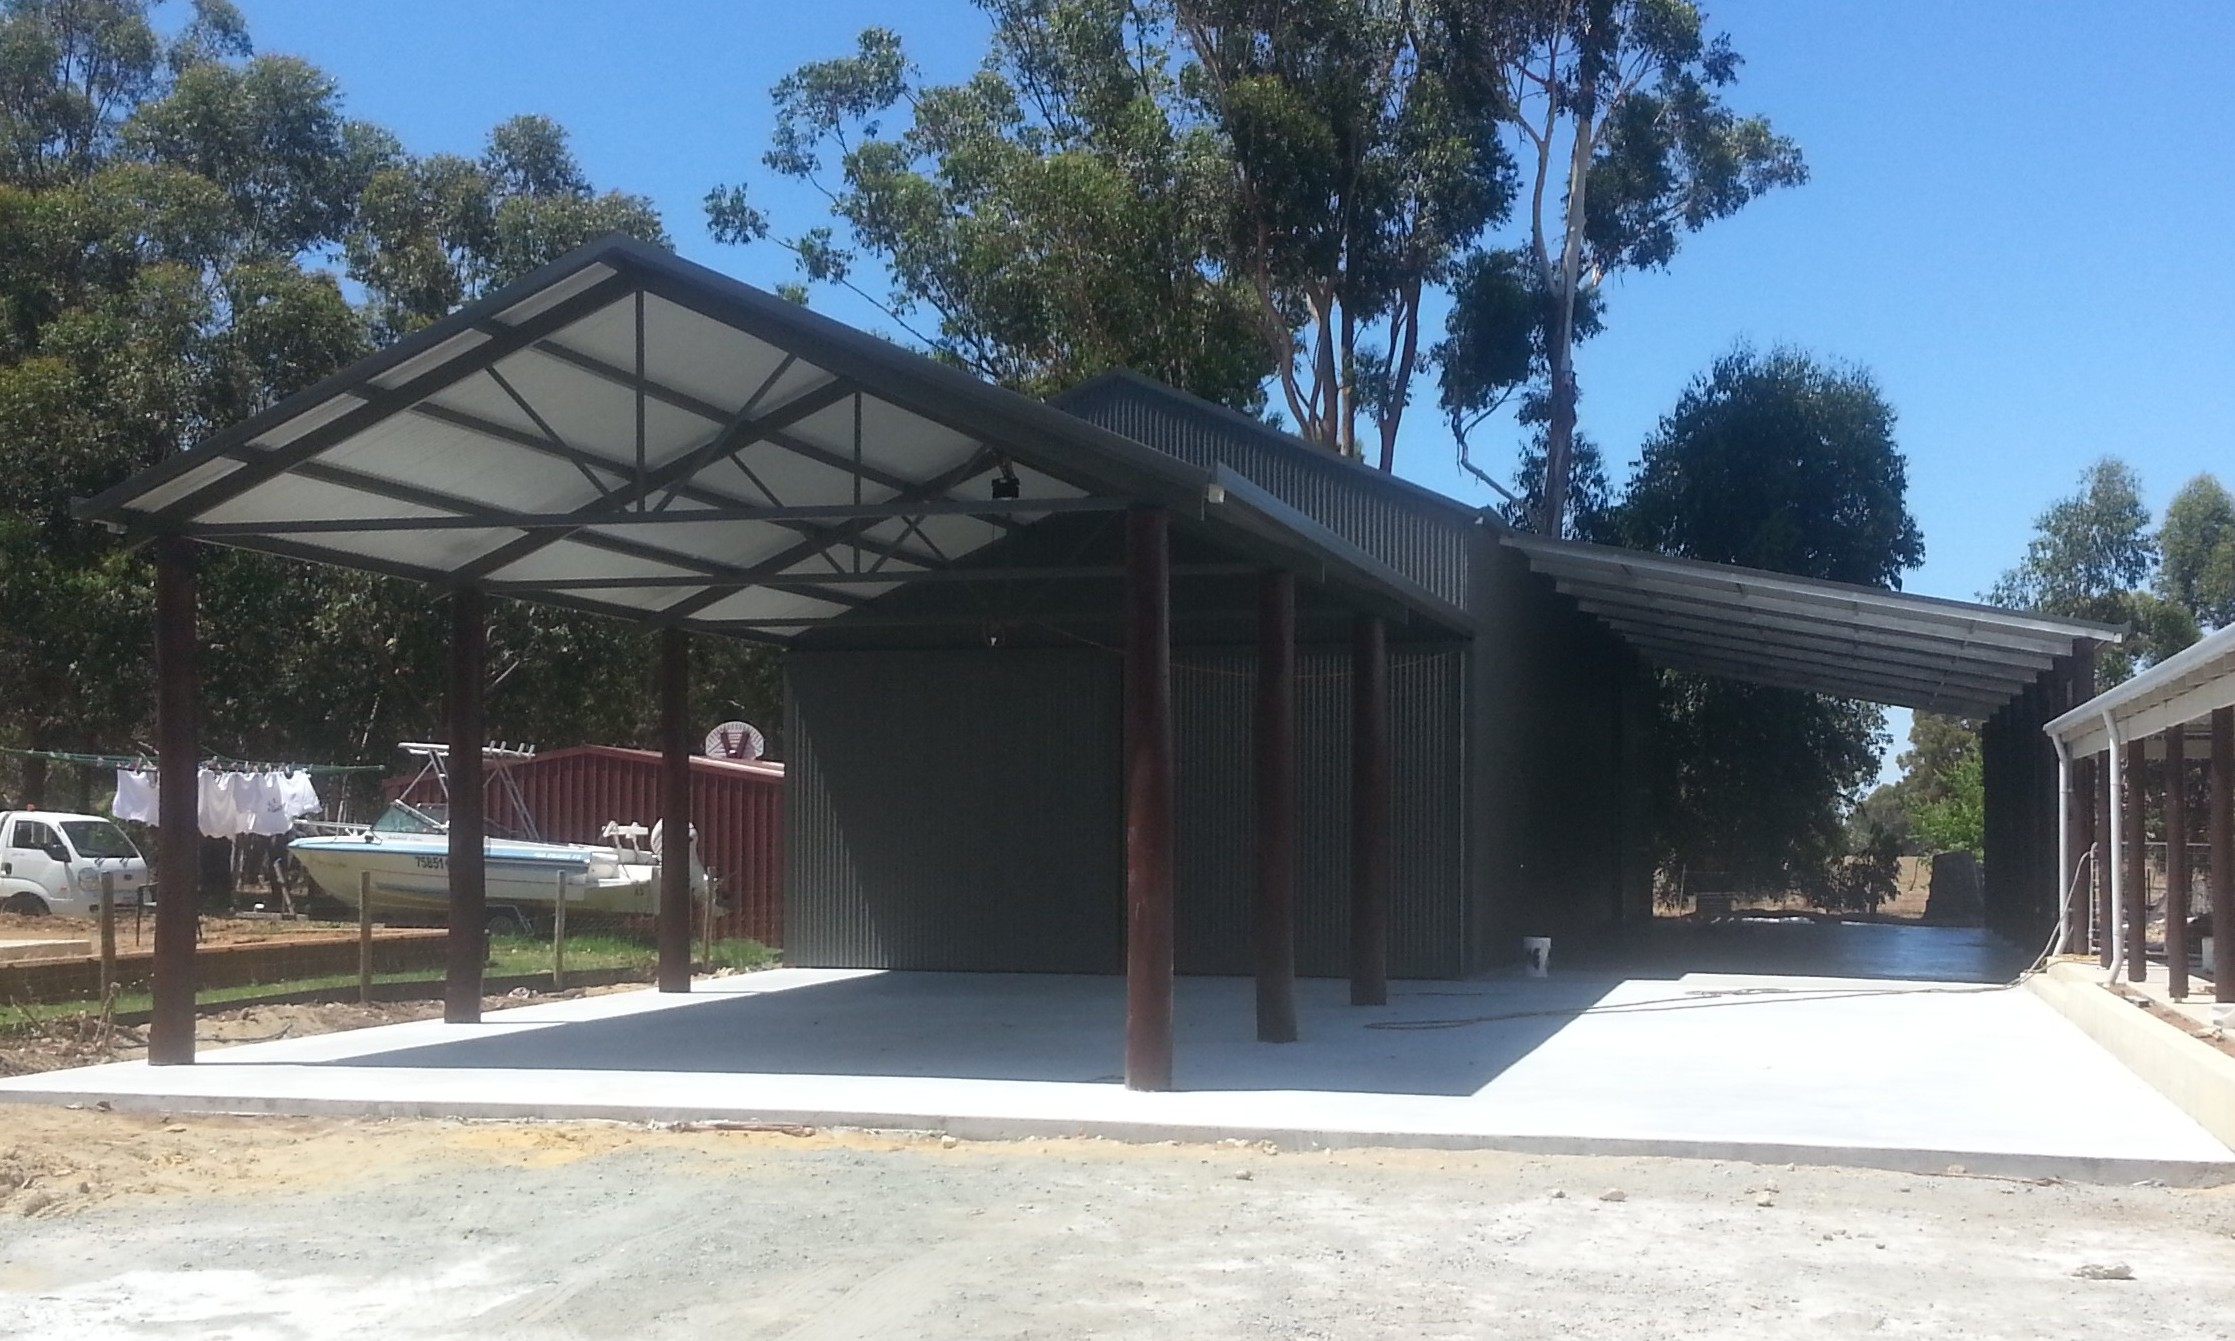 Rural Sheds Perth + Lean to